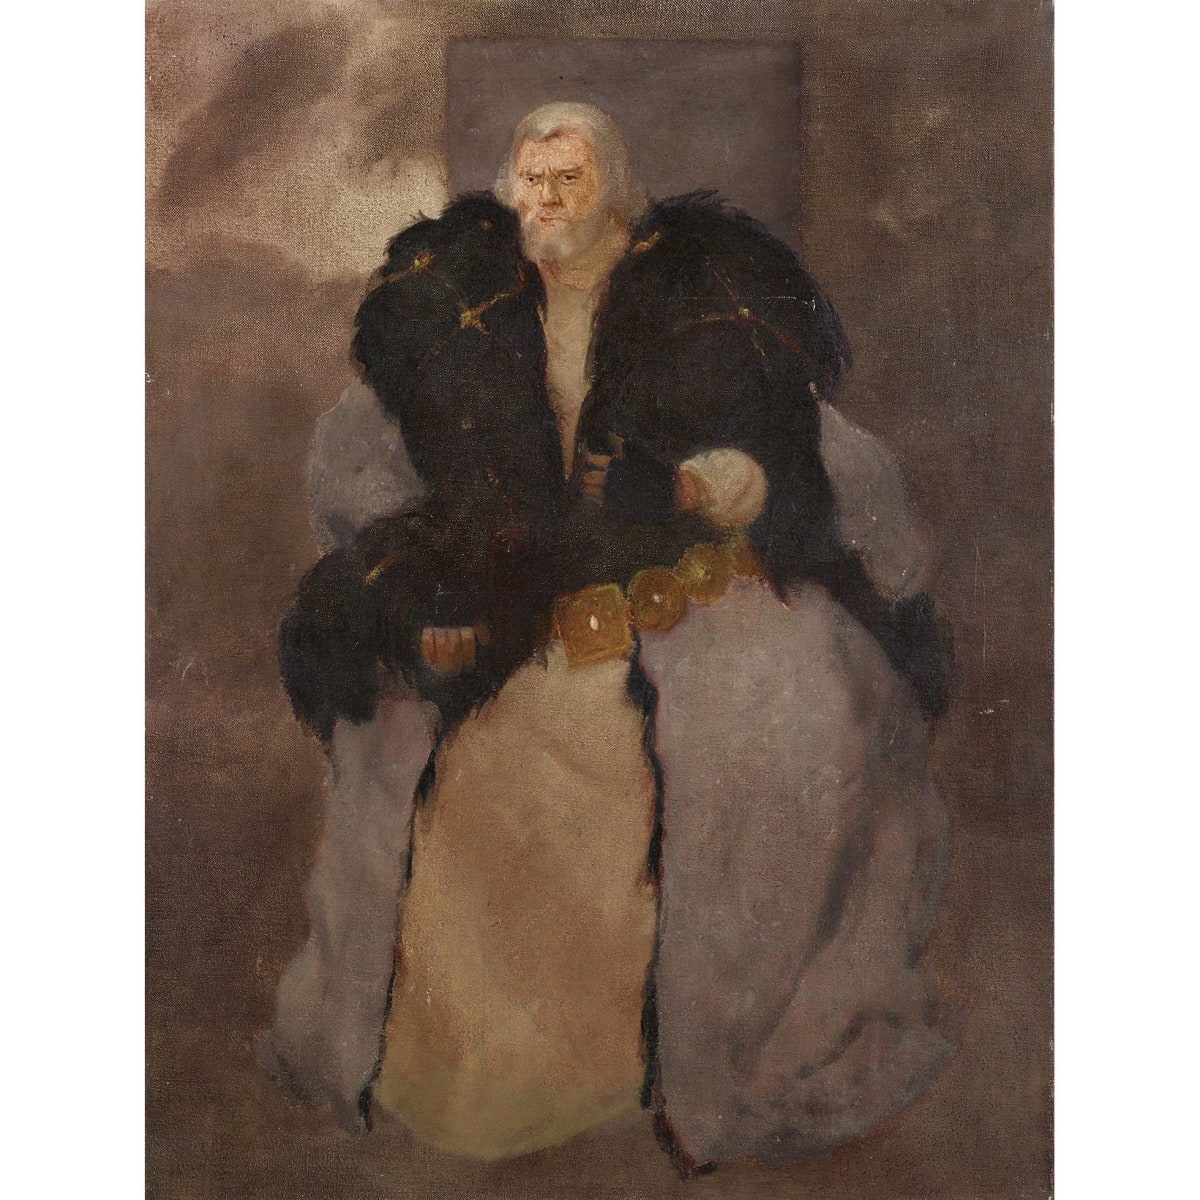 John Halliday No 21, John of Gaunt in Richard II - Paul Hardwick signed and titled on canvas verso oil on canvas 24 x 18 inches